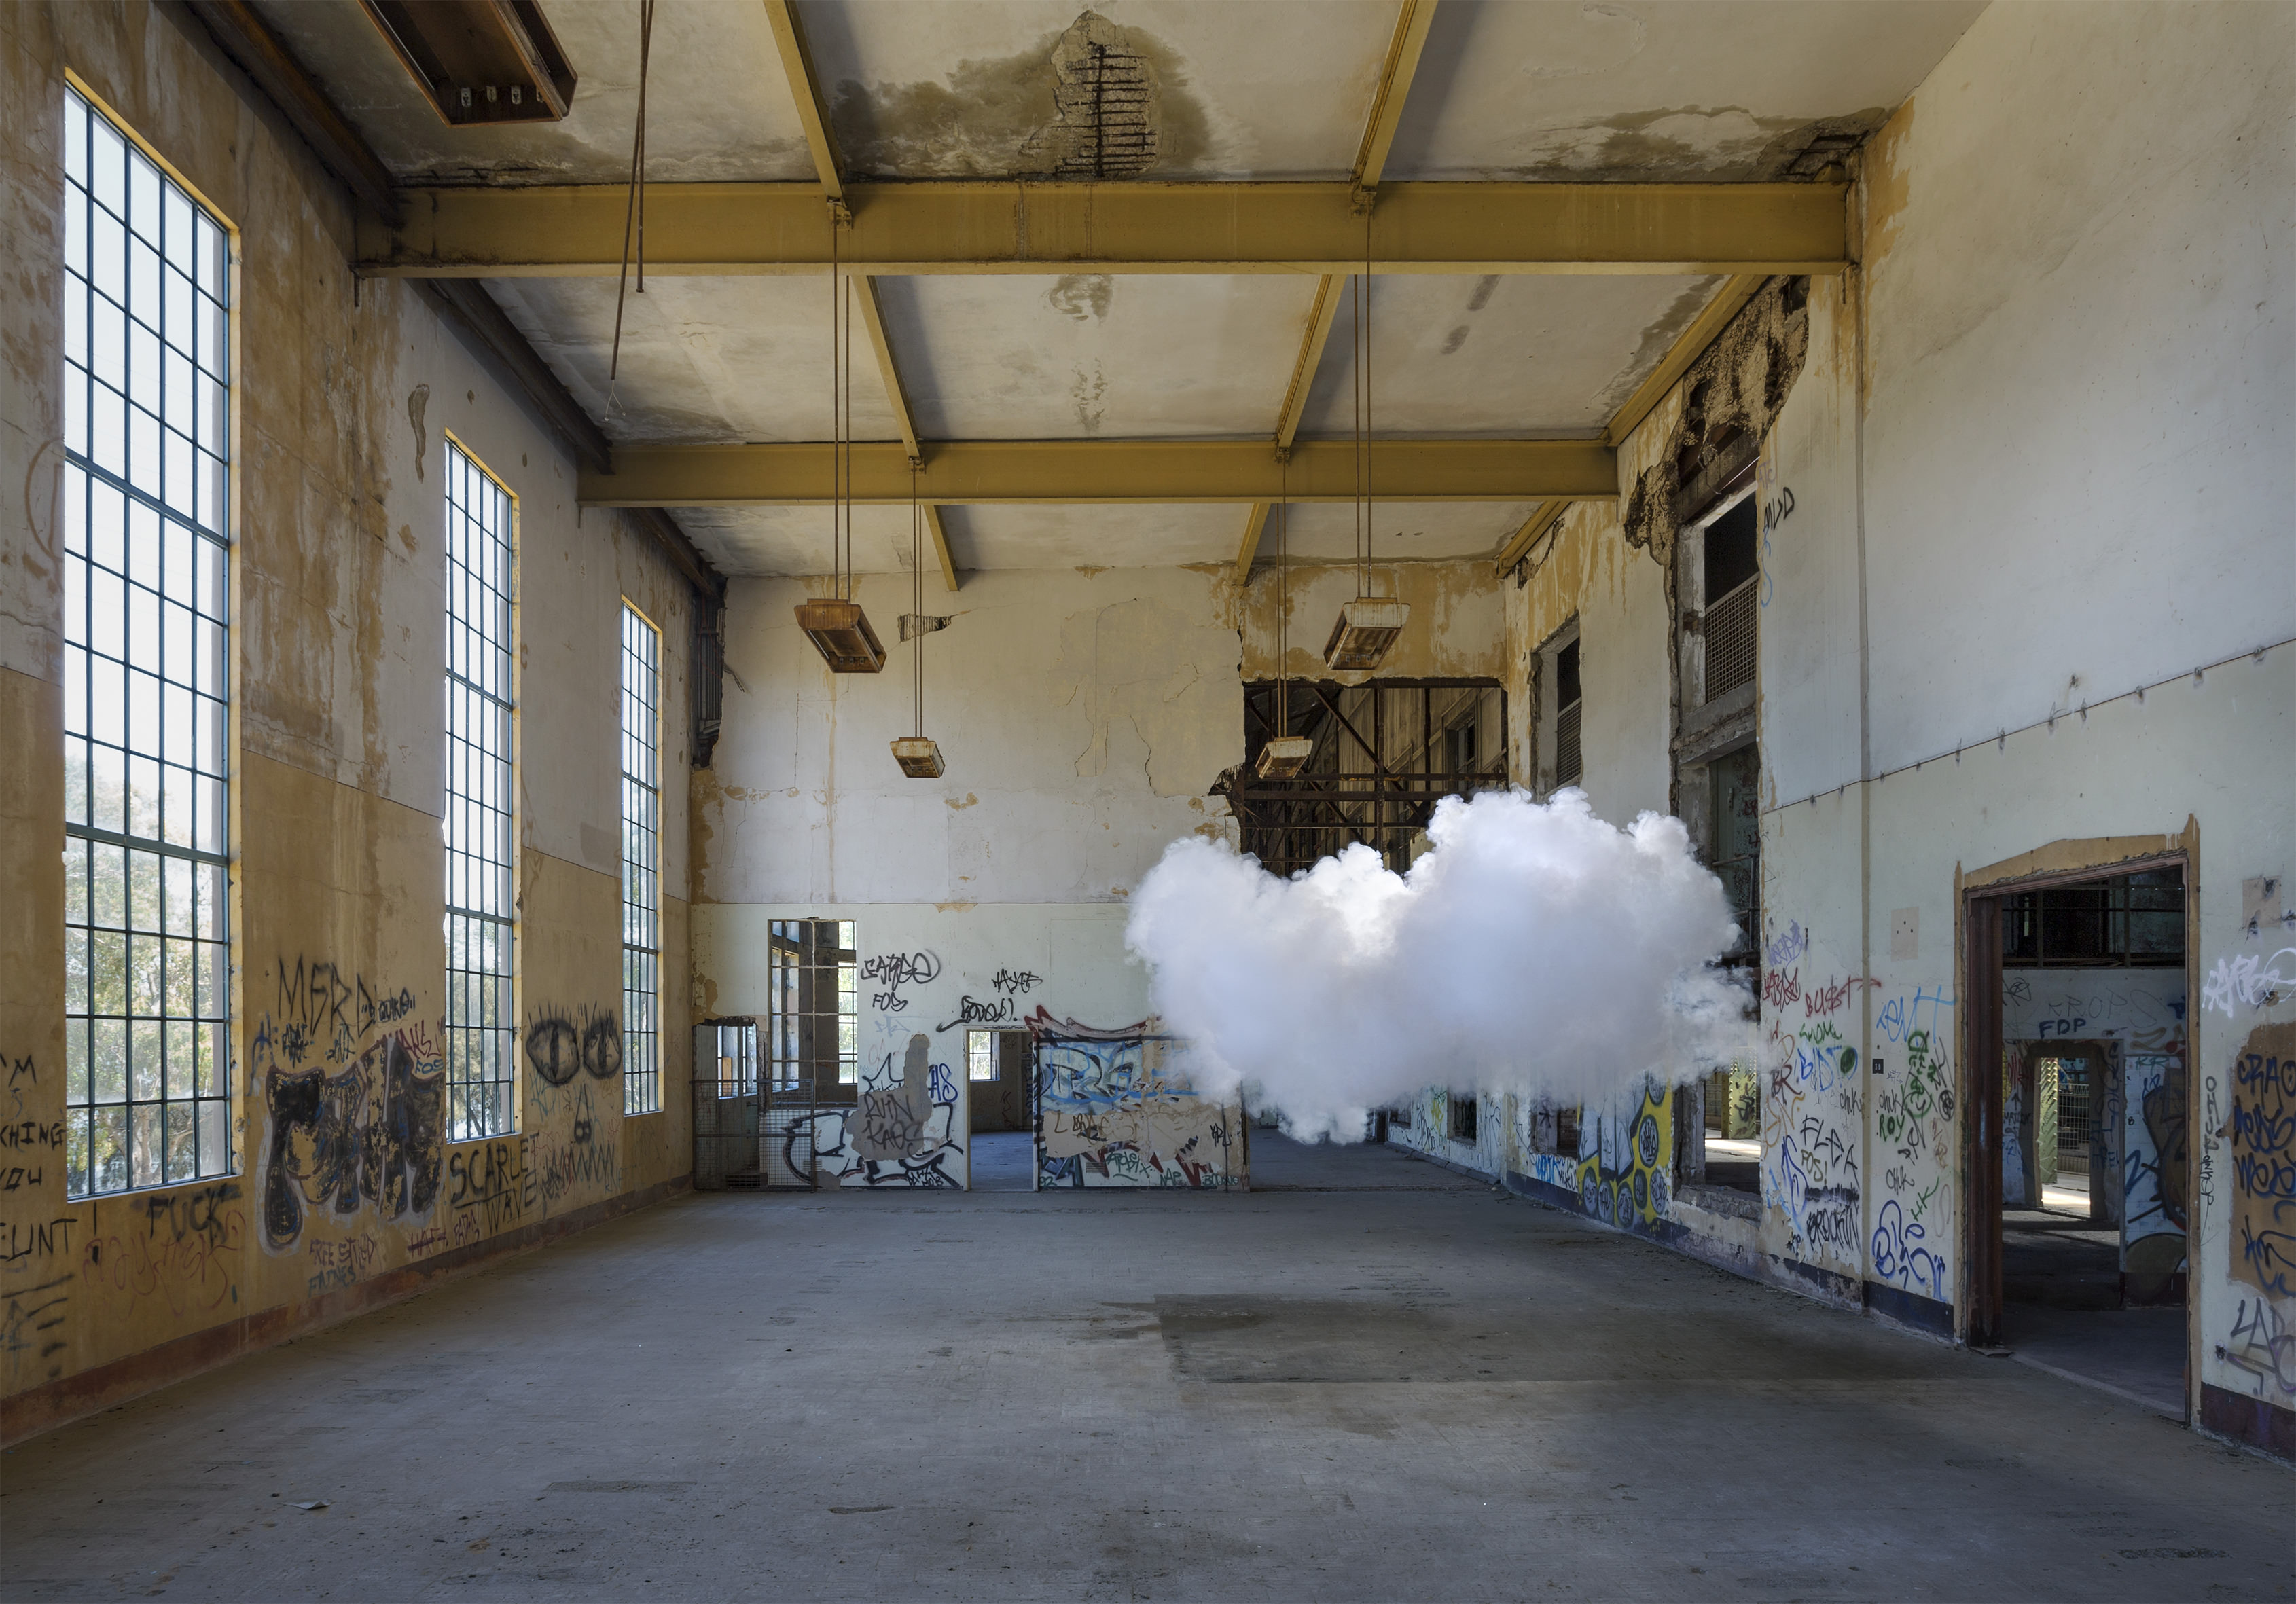 Berndnaut Smilde, Nimbus Powerstation, 2017, digital c-type print mounted on aluminium, framed, 125 x 179 cm